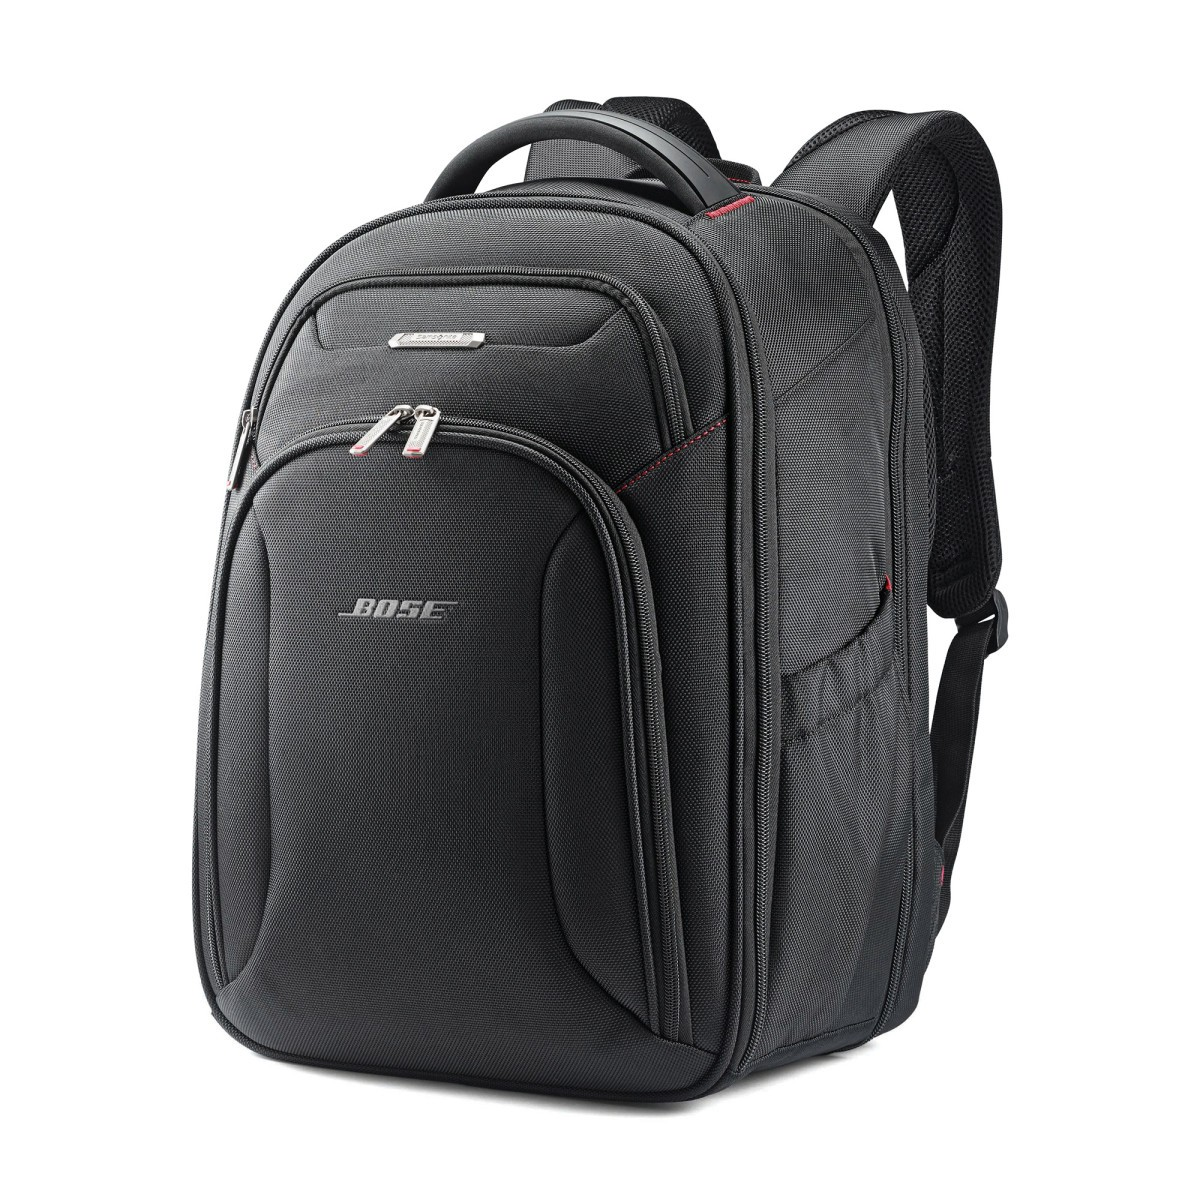 820149b91245 Samsonite Classic Perfect Fit Laptop Backpack- Fenix Toulouse Handball